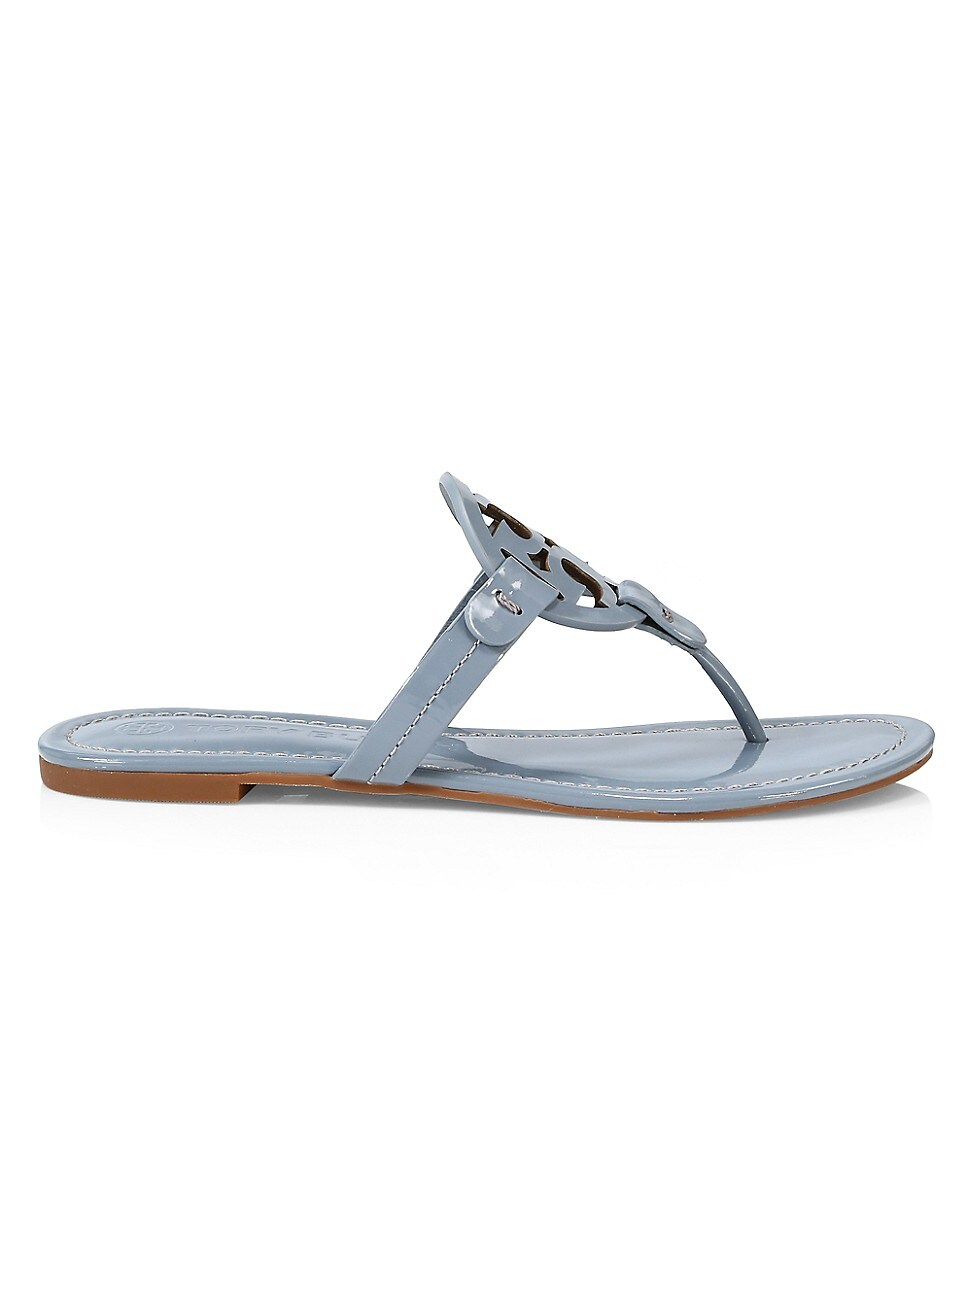 Tory Burch Leathers WOMEN'S MILLER PATENT LEATHER THONG SANDALS